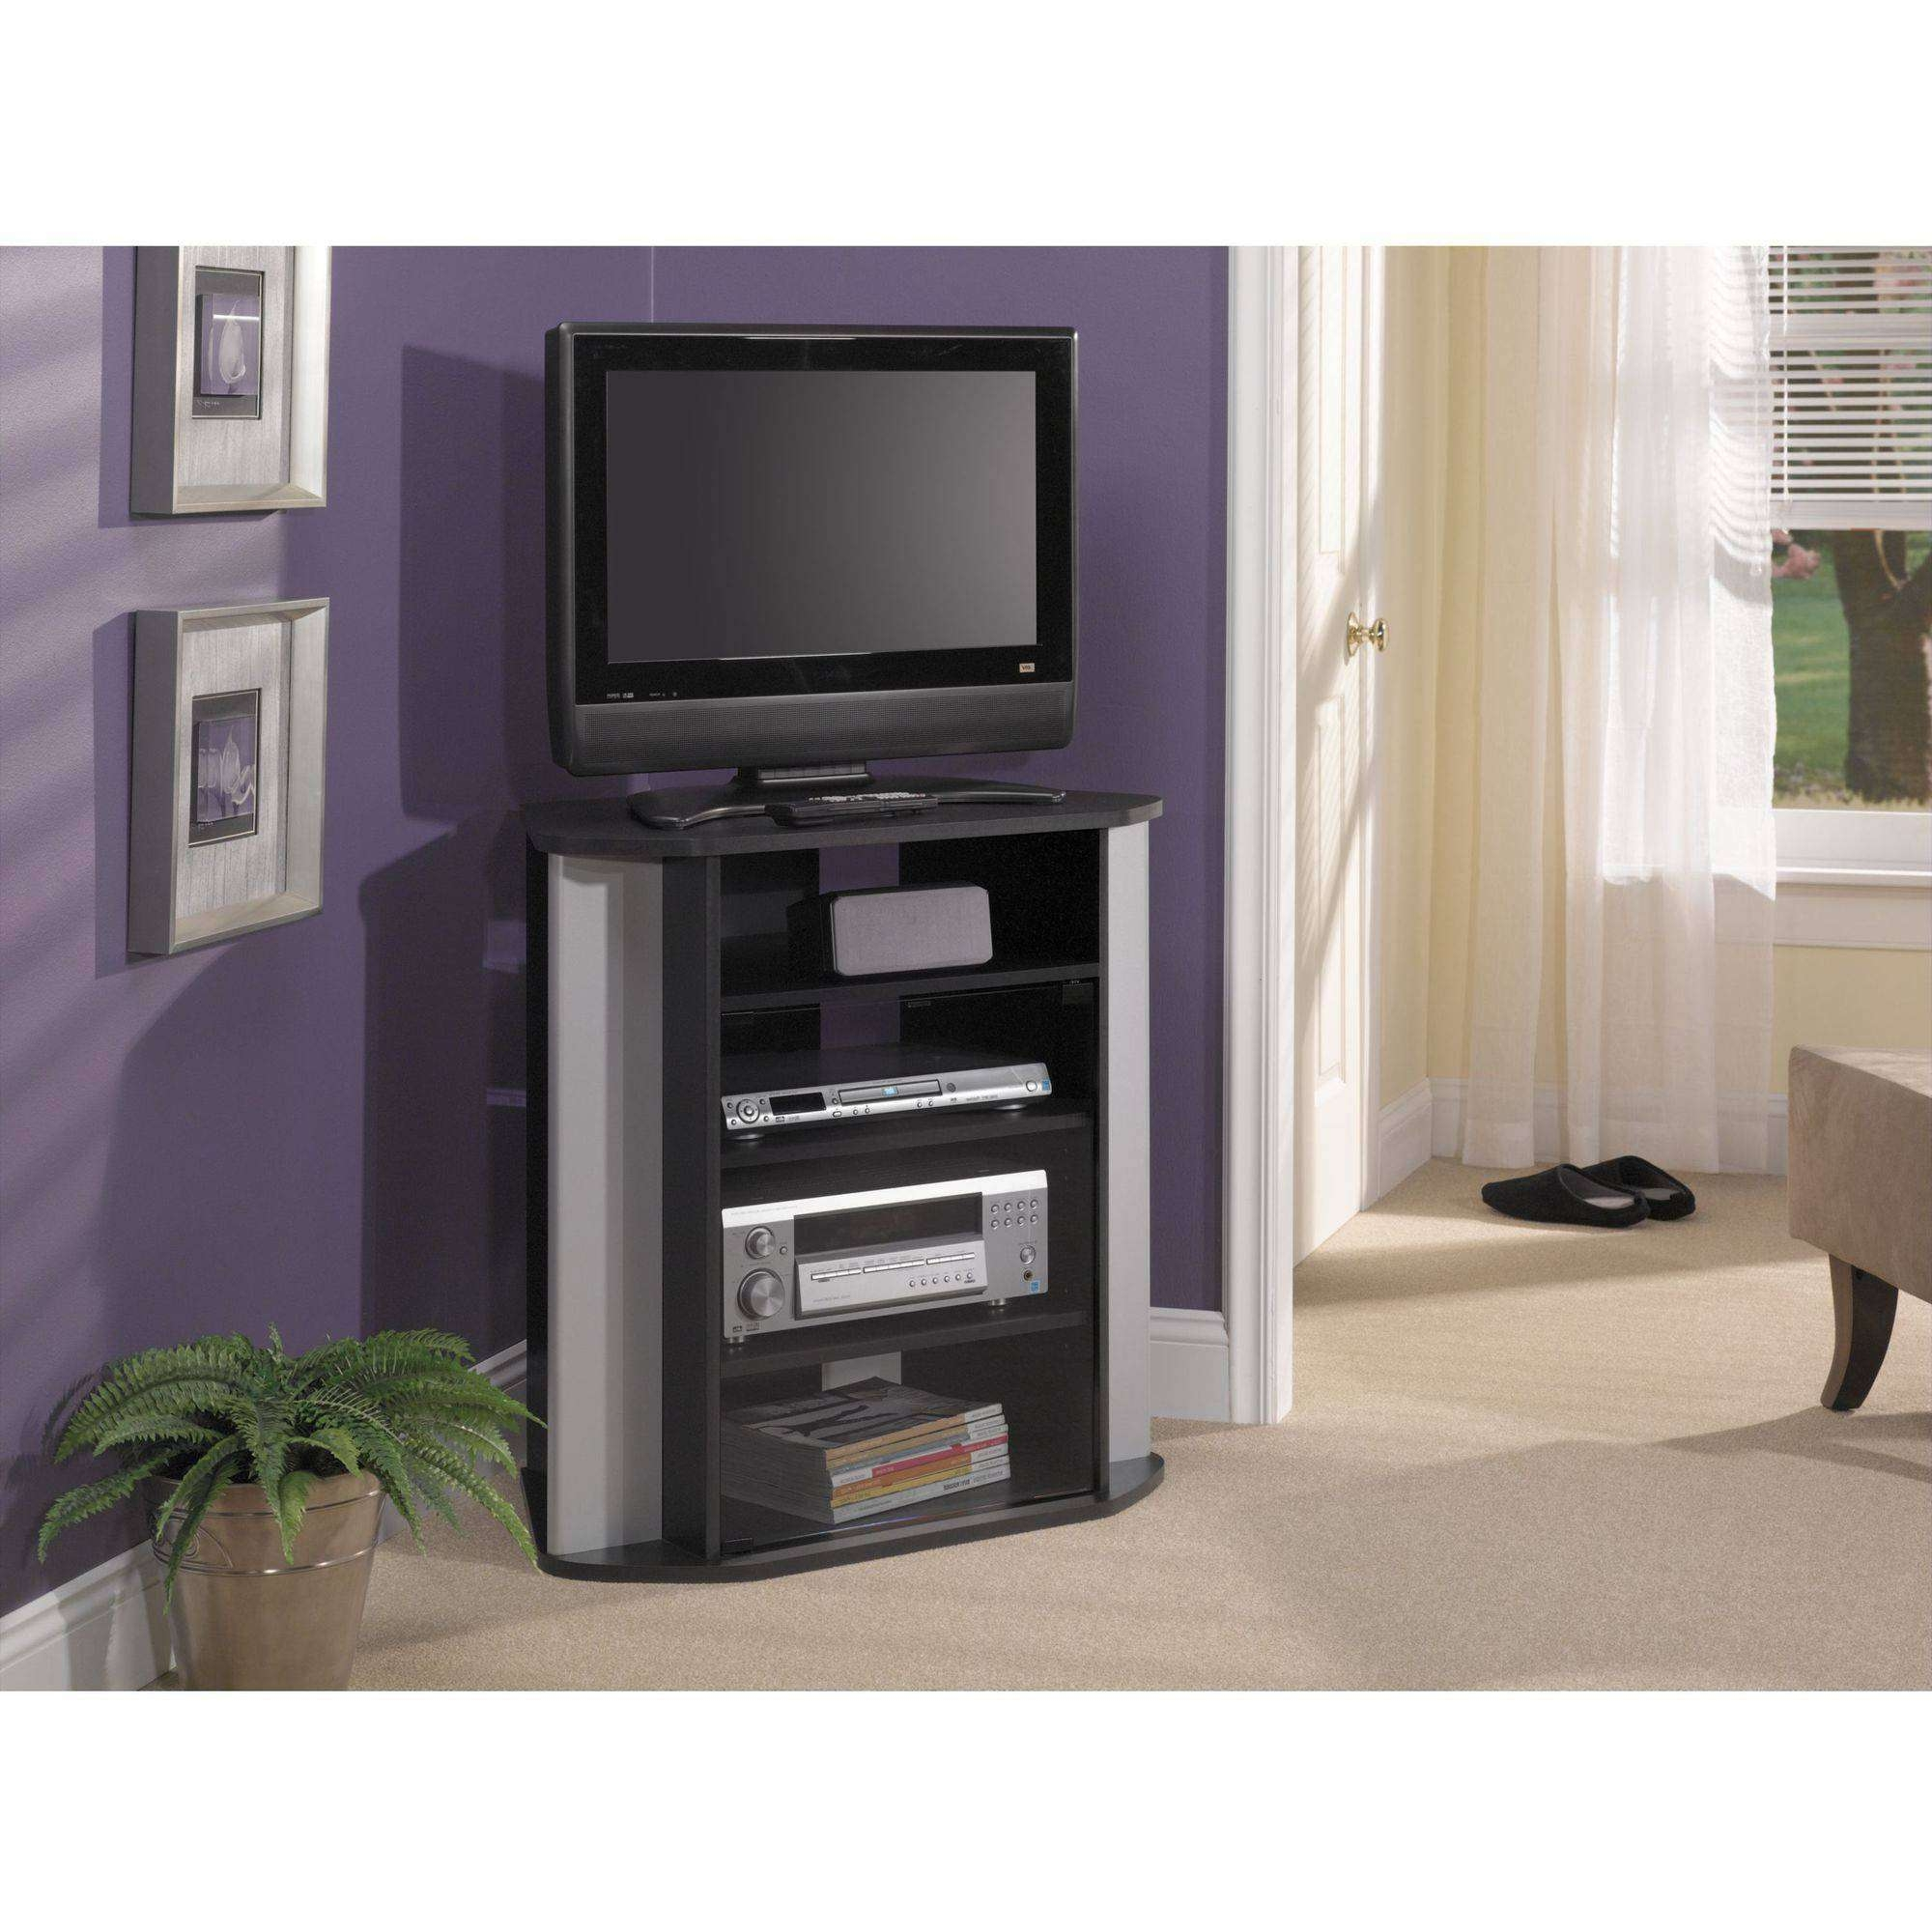 Bush Visions Black Tall Corner Tv Stand, For Tvs Up To 37 Inside Silver Corner Tv Stands (View 1 of 15)